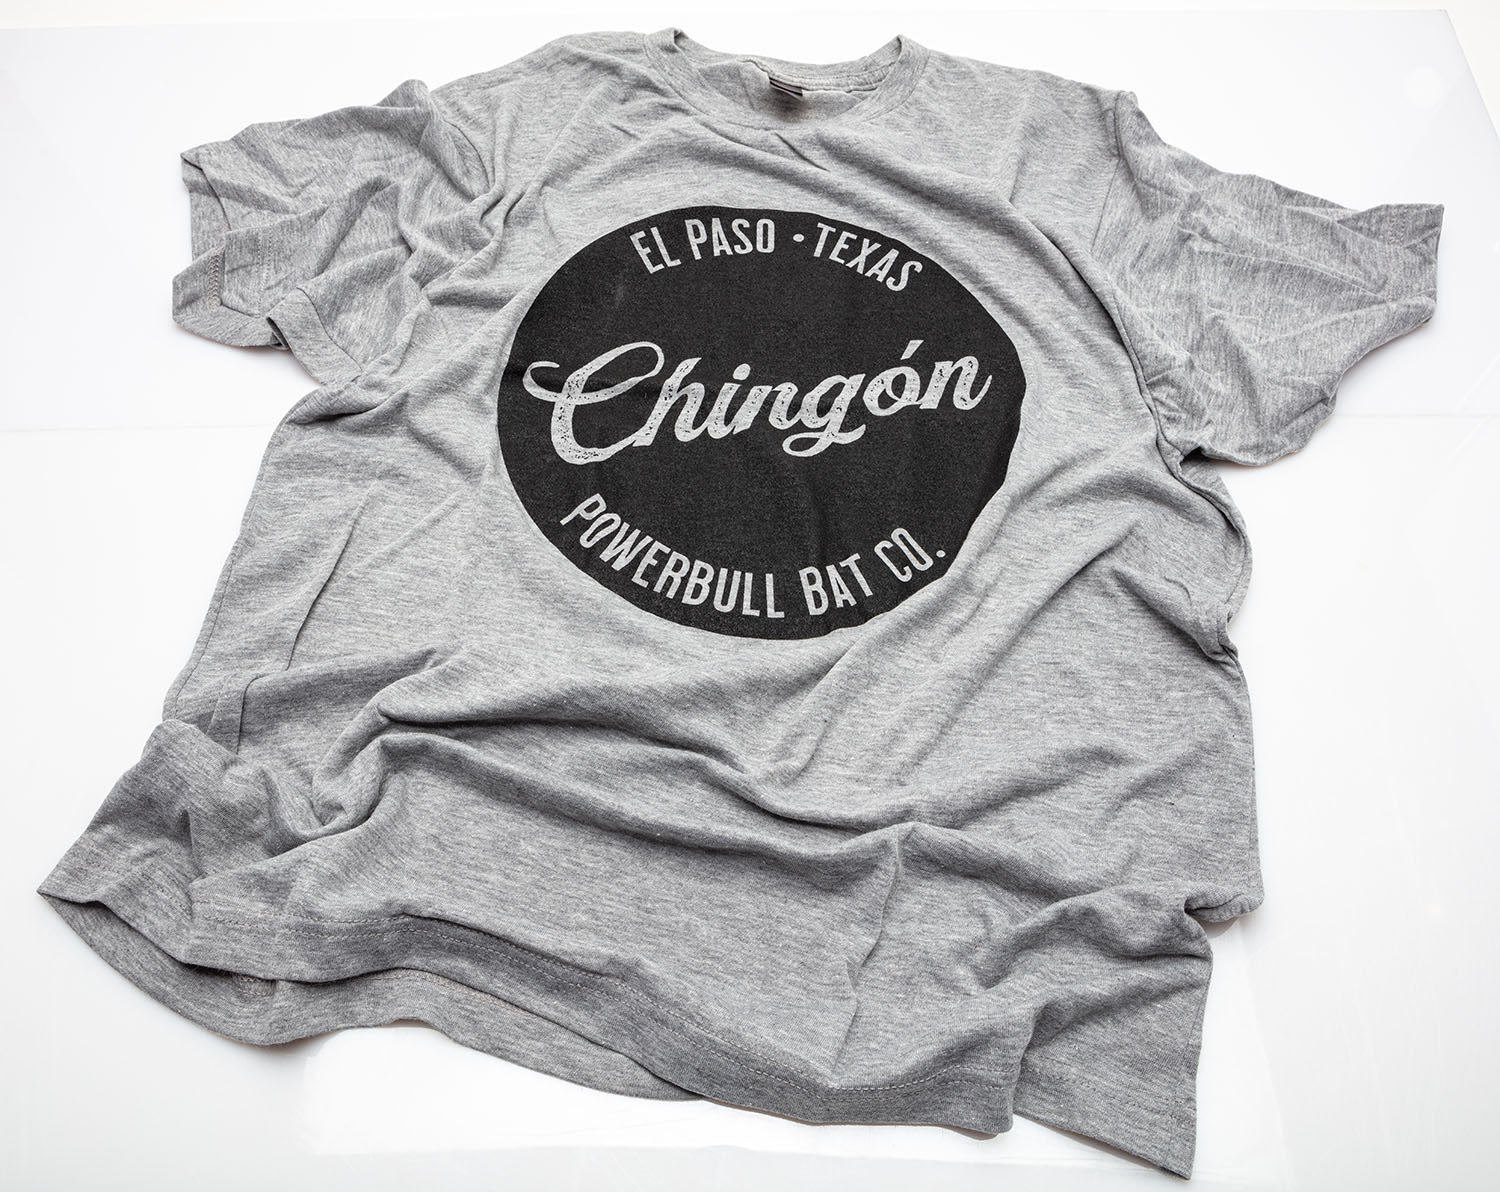 El Chingon Powerbull Bat Co. T-shirt